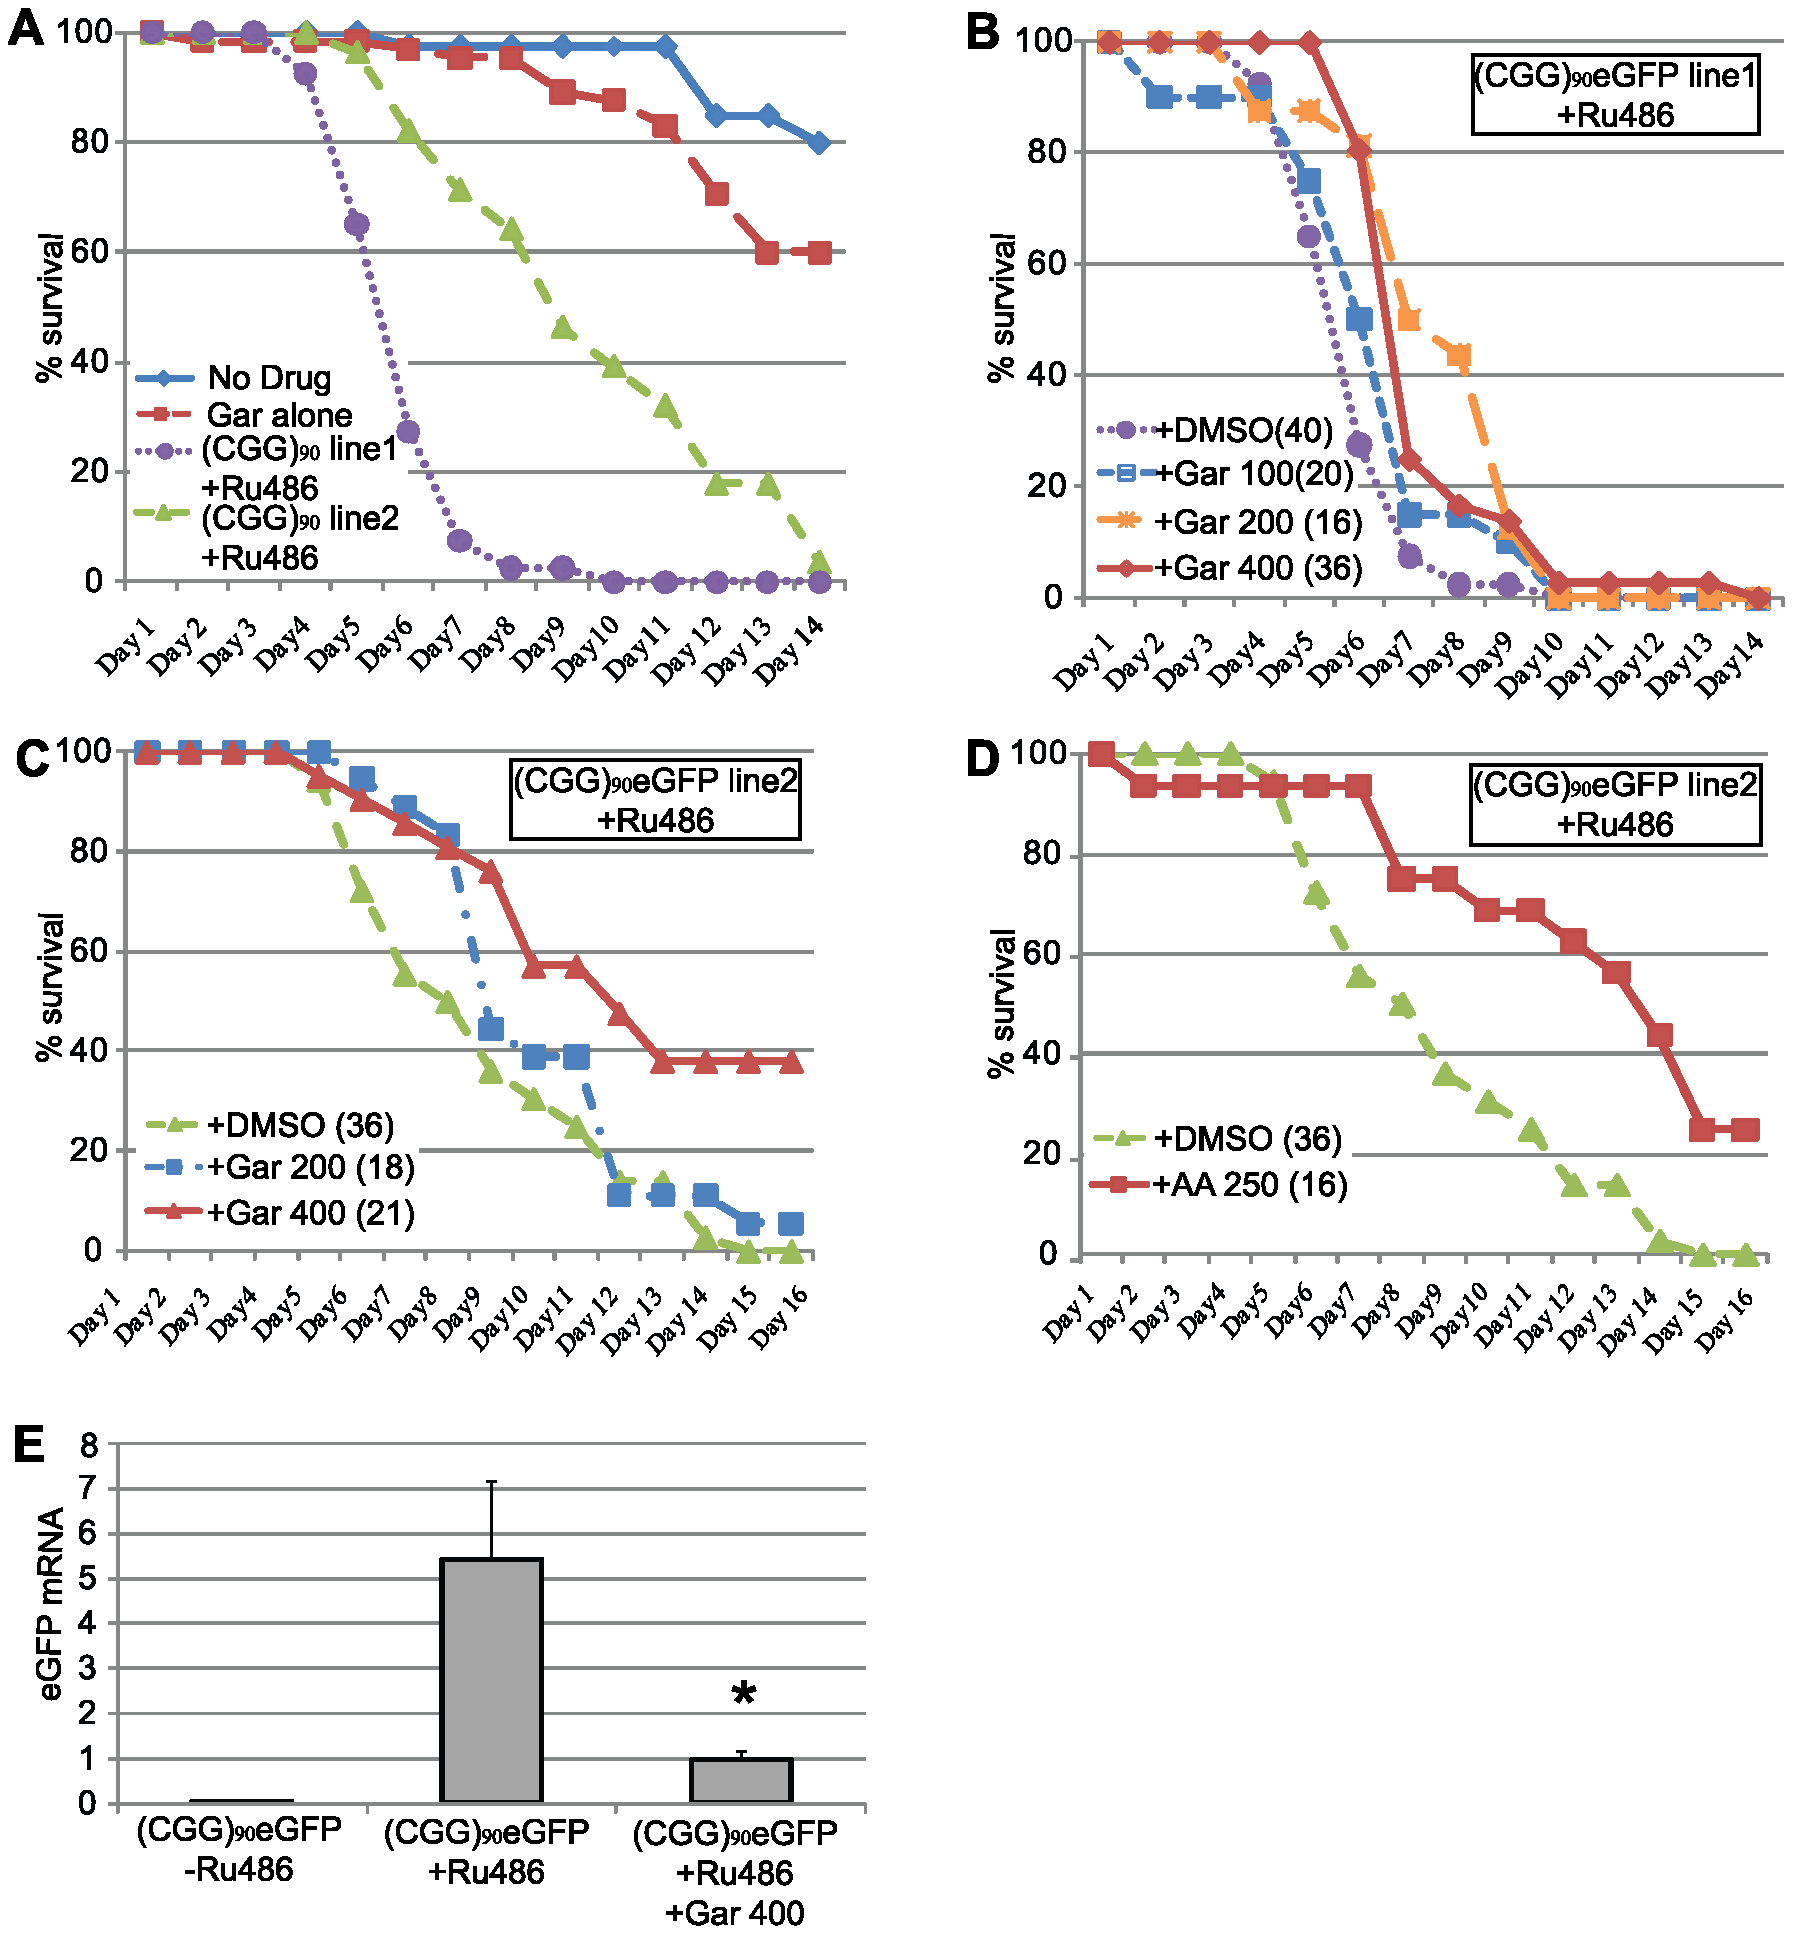 HAT inhibitors extend lifespan in adult (CGG)<sub>90</sub>-eGFP flies.